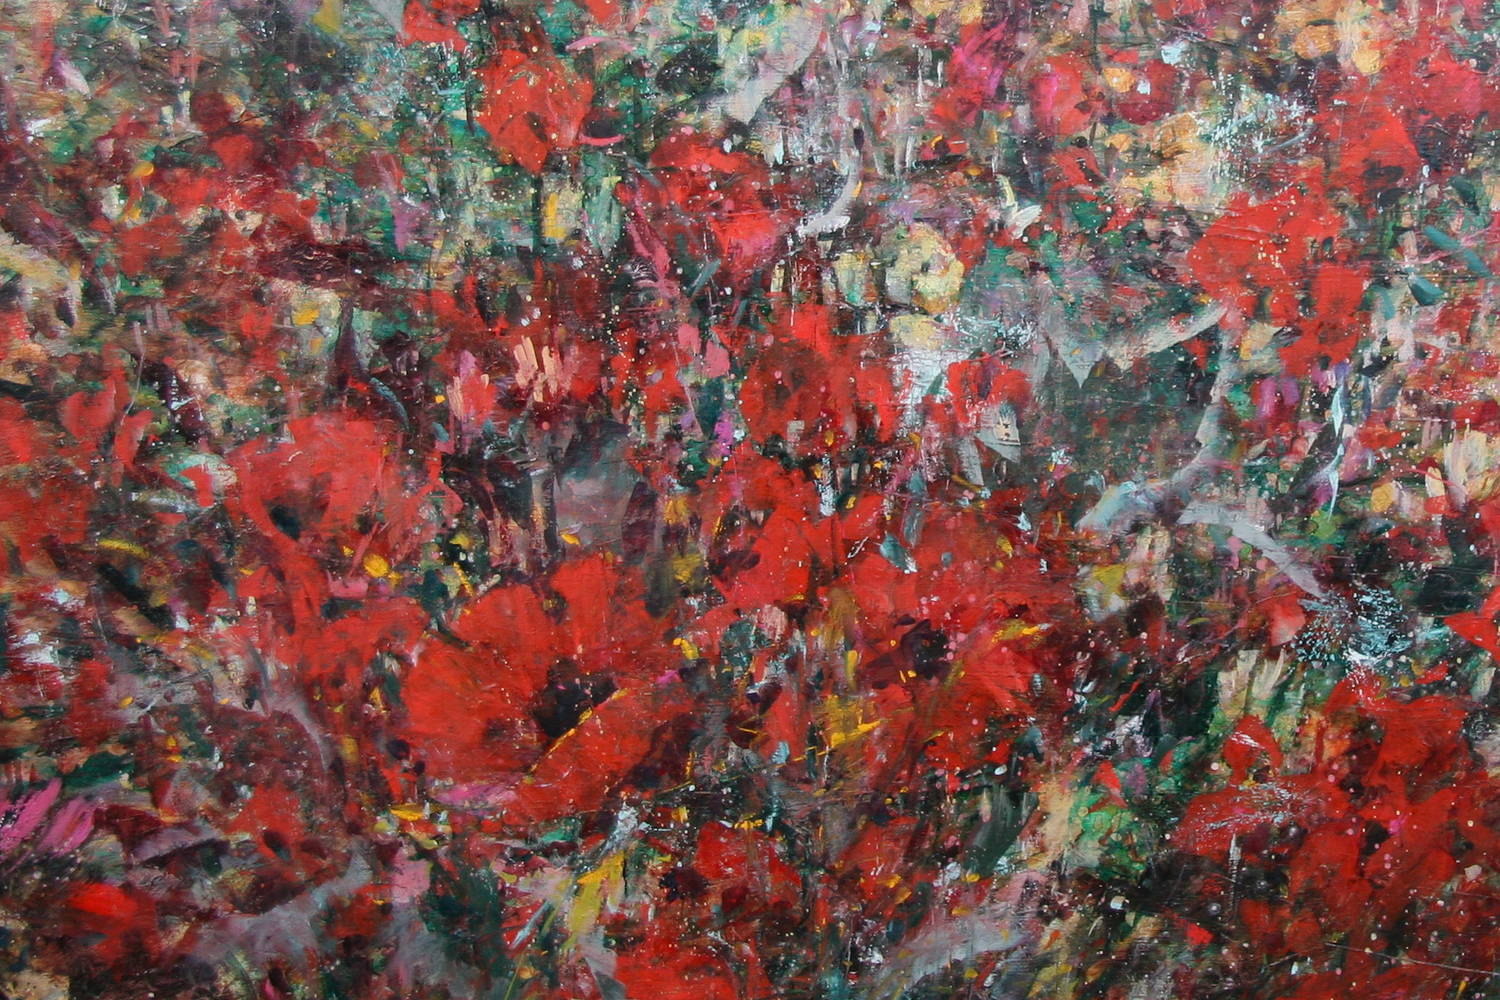 Acrylic painting Symphony in Red by Susette Gertsch